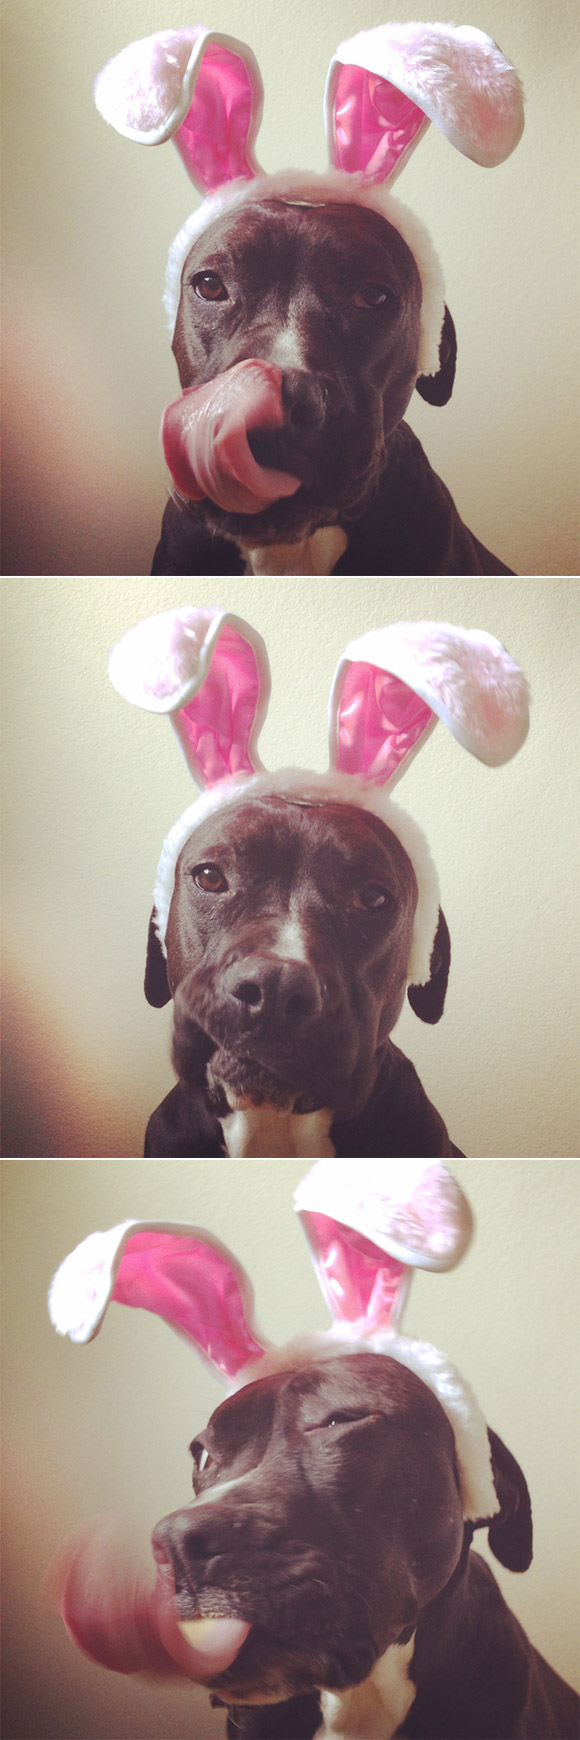 "Nani's ""Easter Photo Booth"" (pit bull wearing rabbit ears and eating peanut butter)"